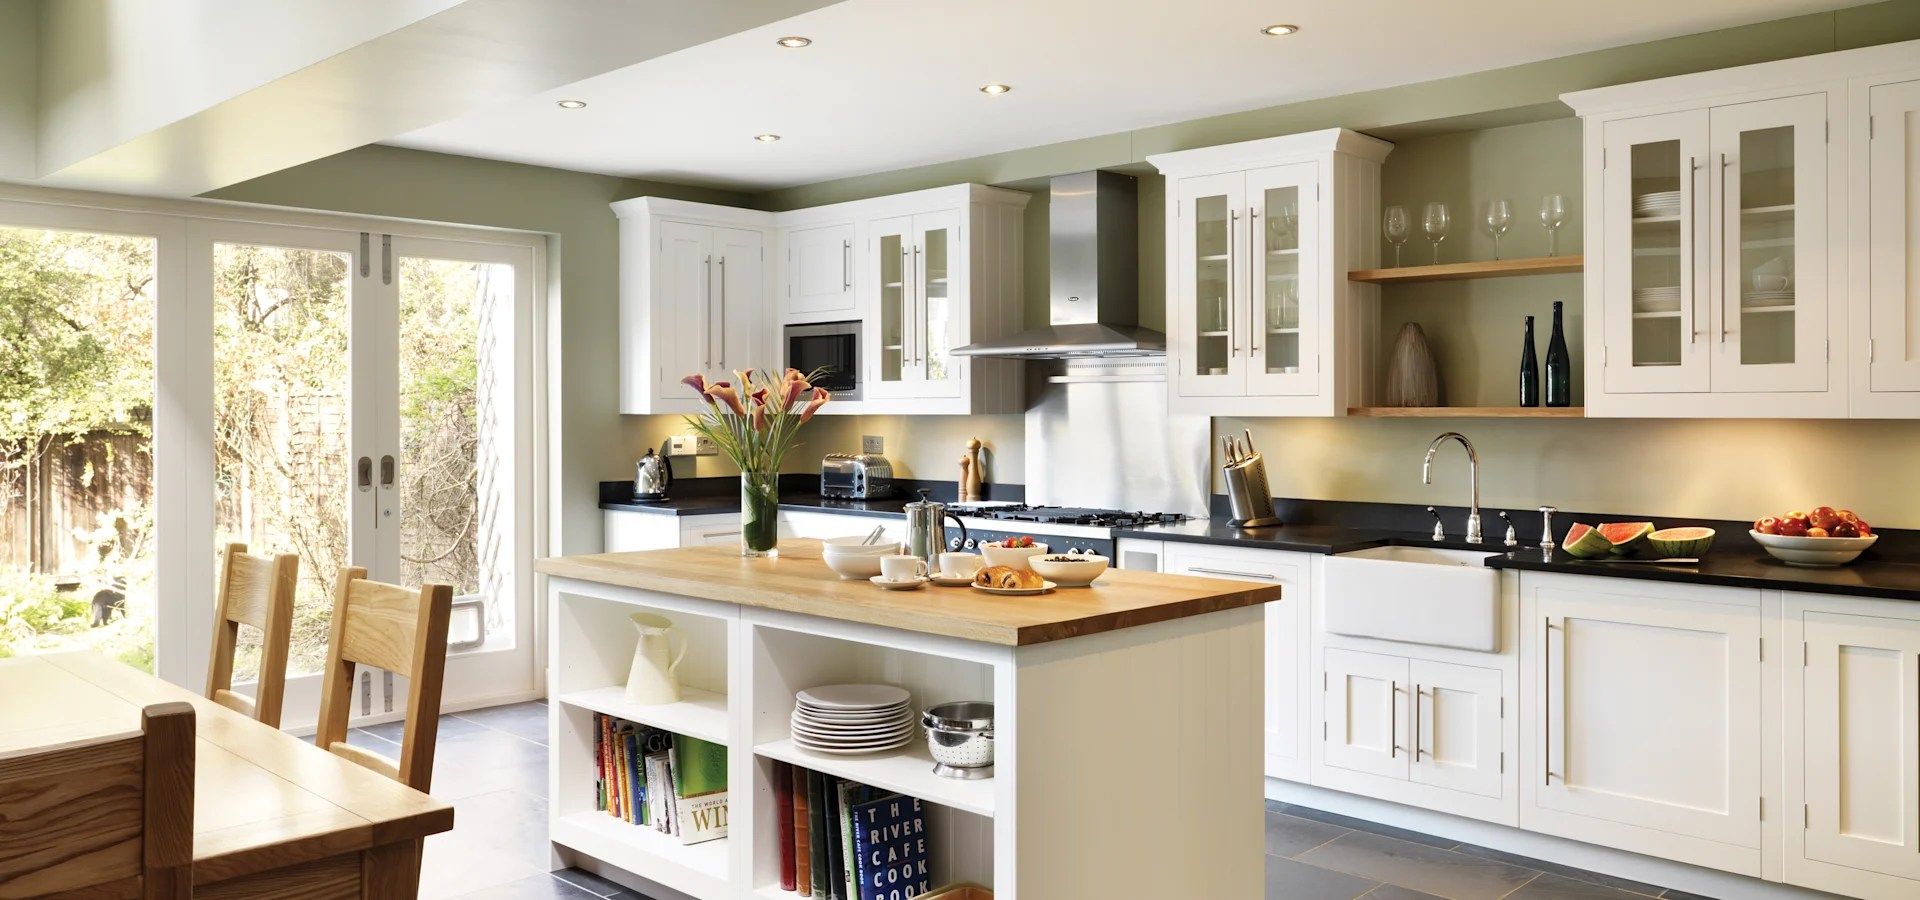 A Plus Keuken Tienen Our Kitchens By Harvey Jones Kitchens Homify